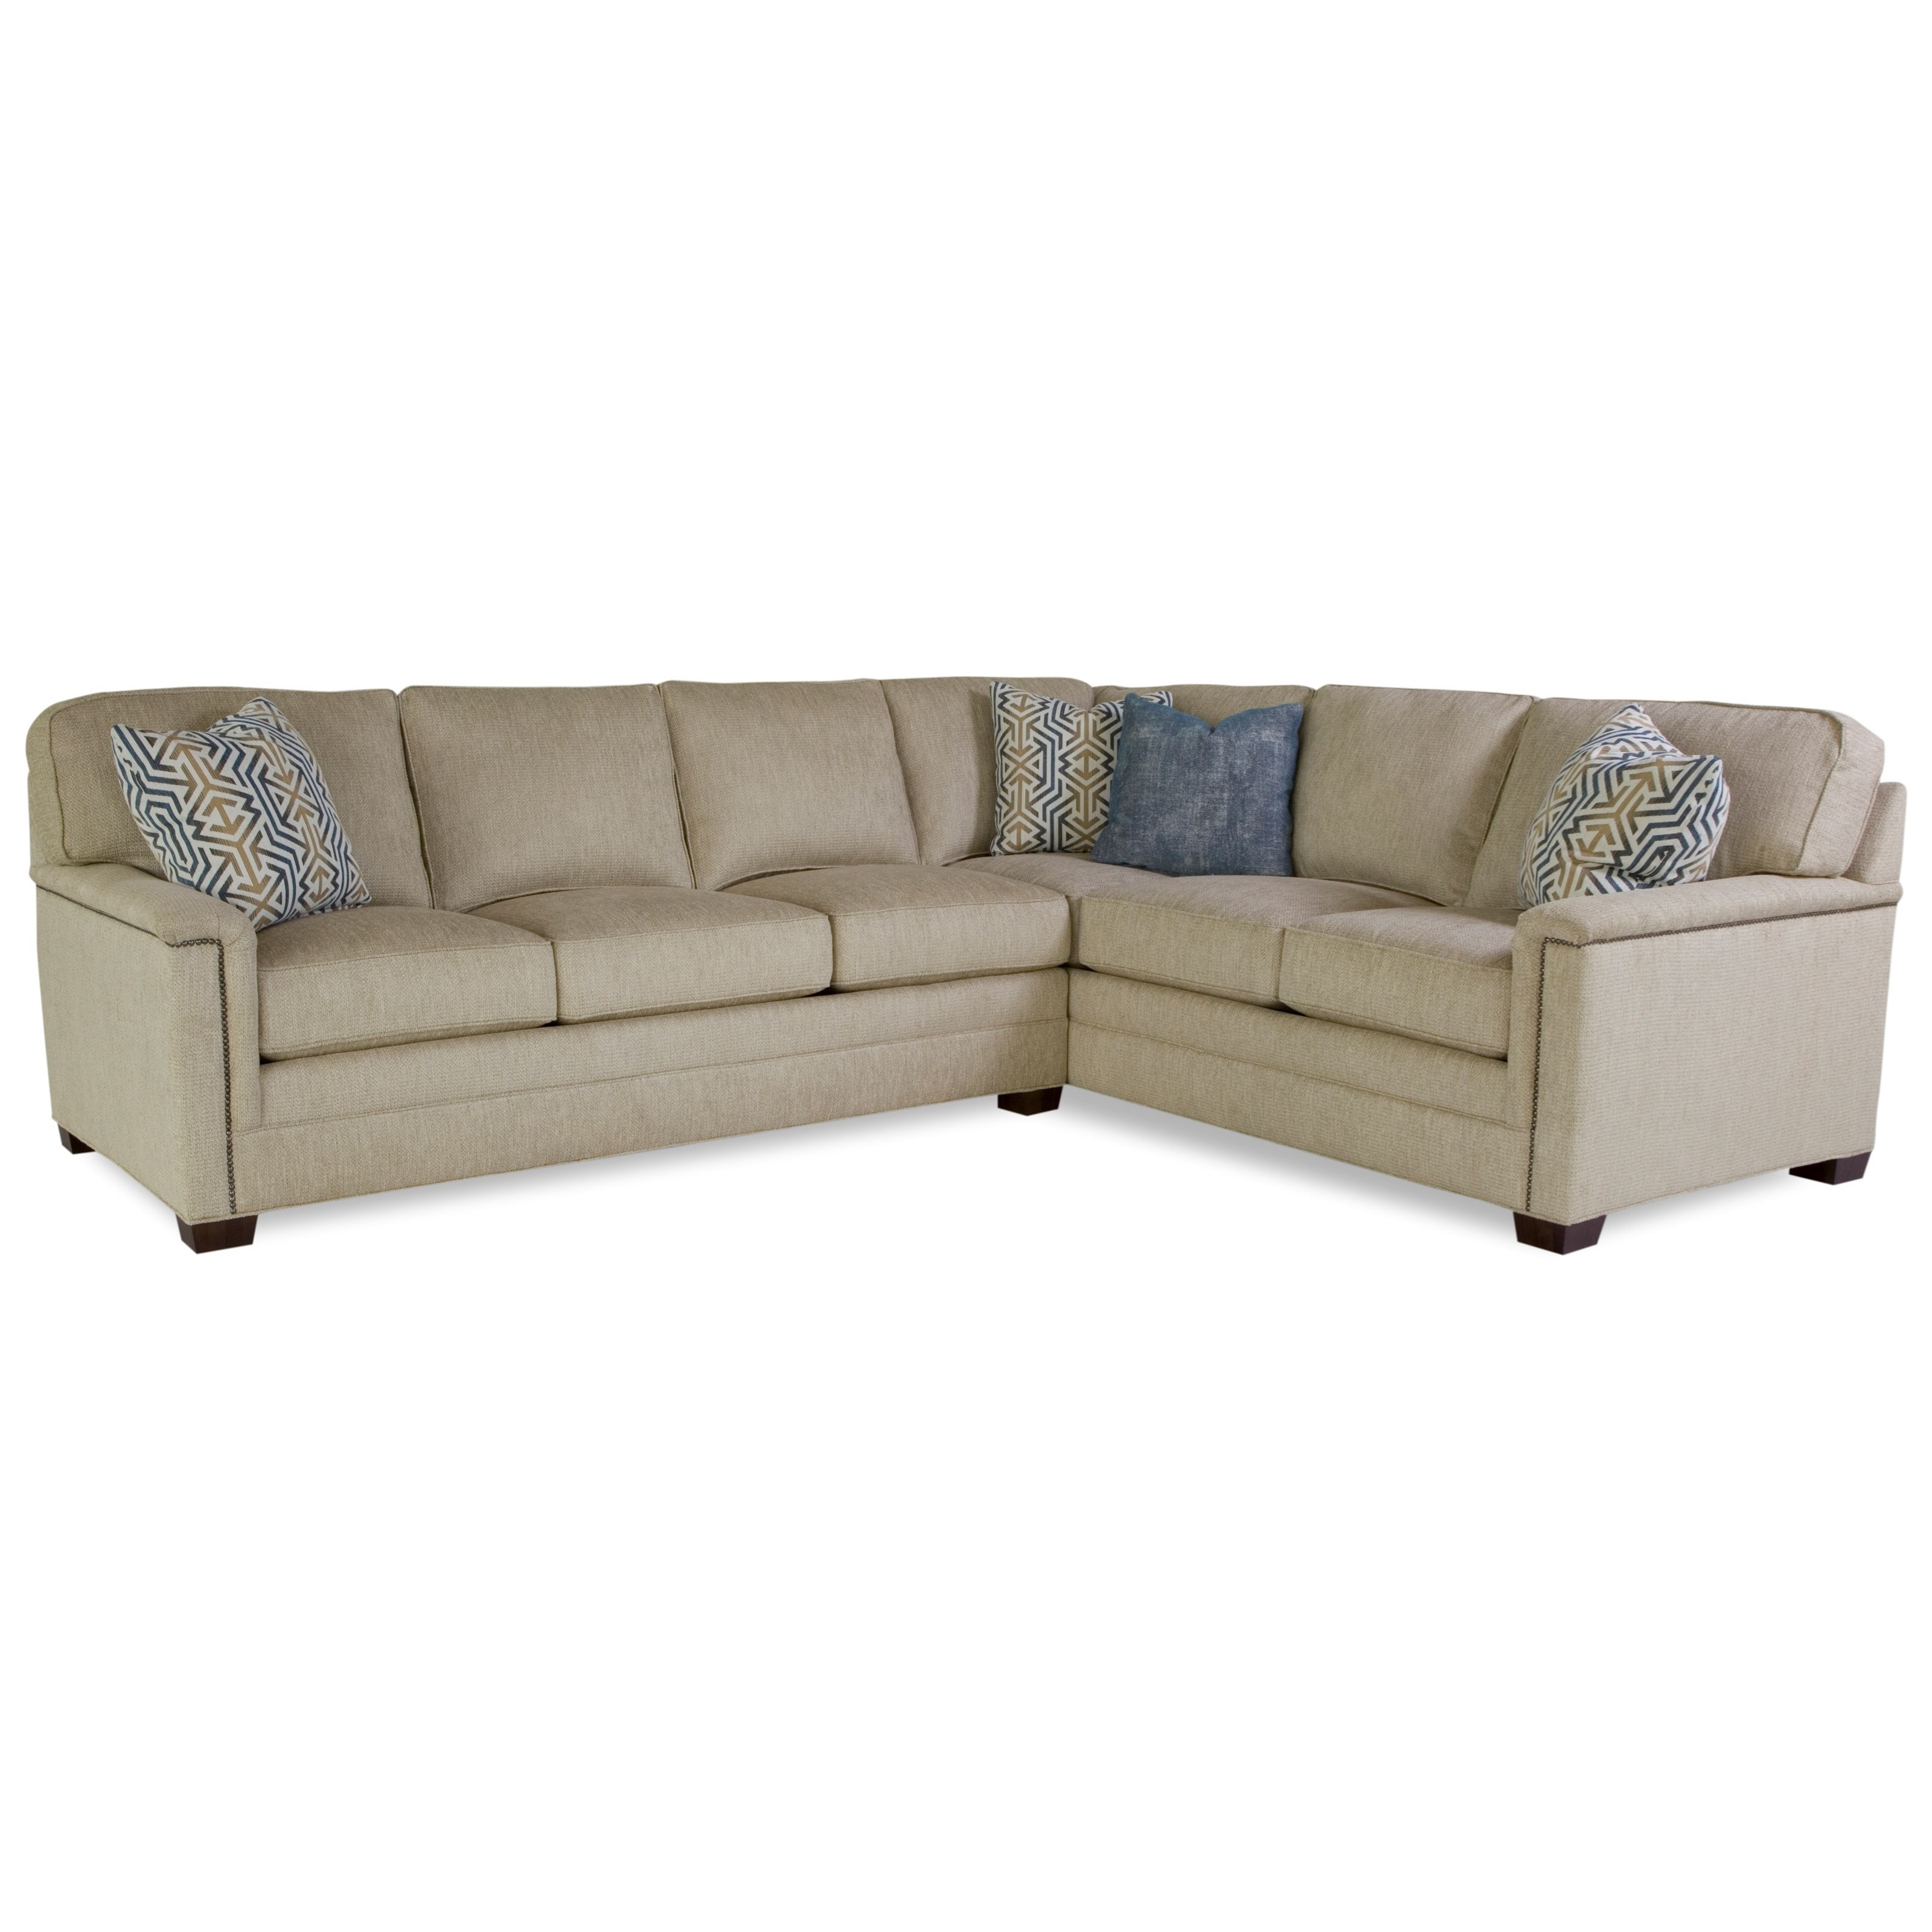 Customizable Sectional